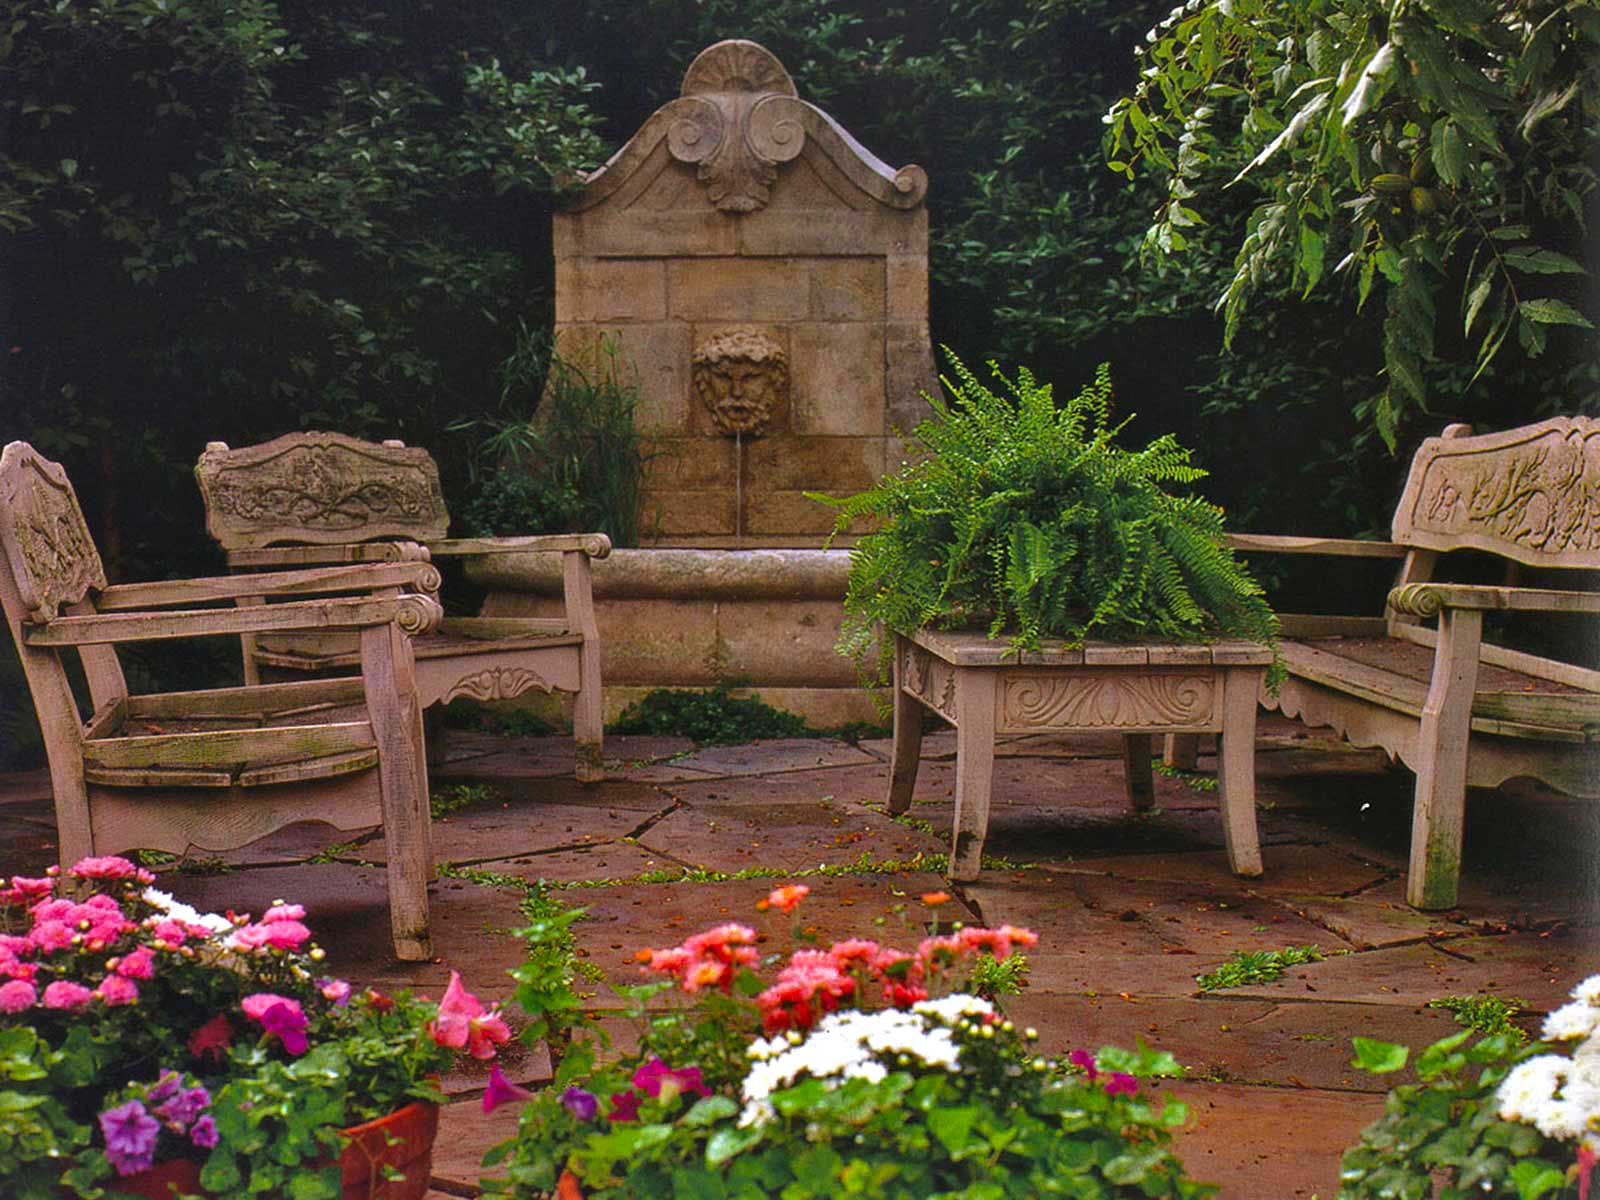 ddla-design-garden-seating-area.jpg